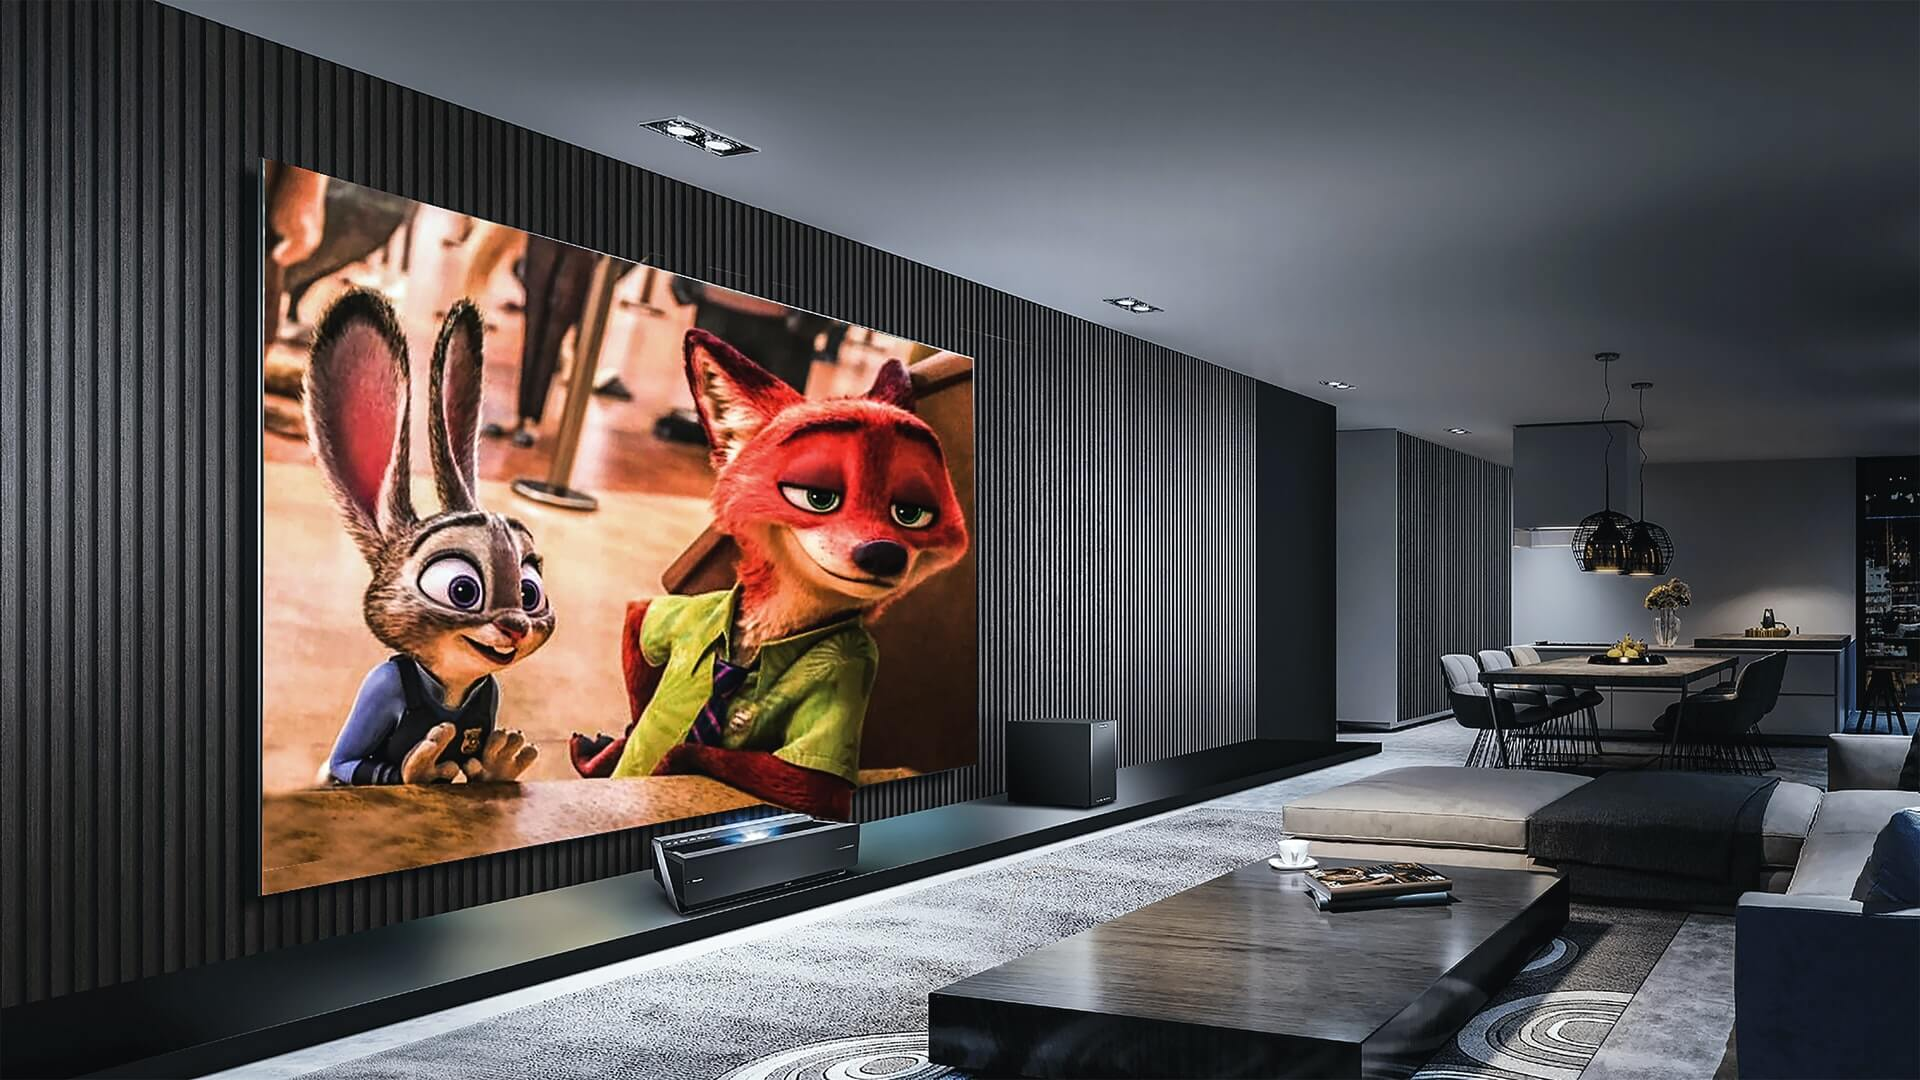 Best Home Theater Projector Under $500